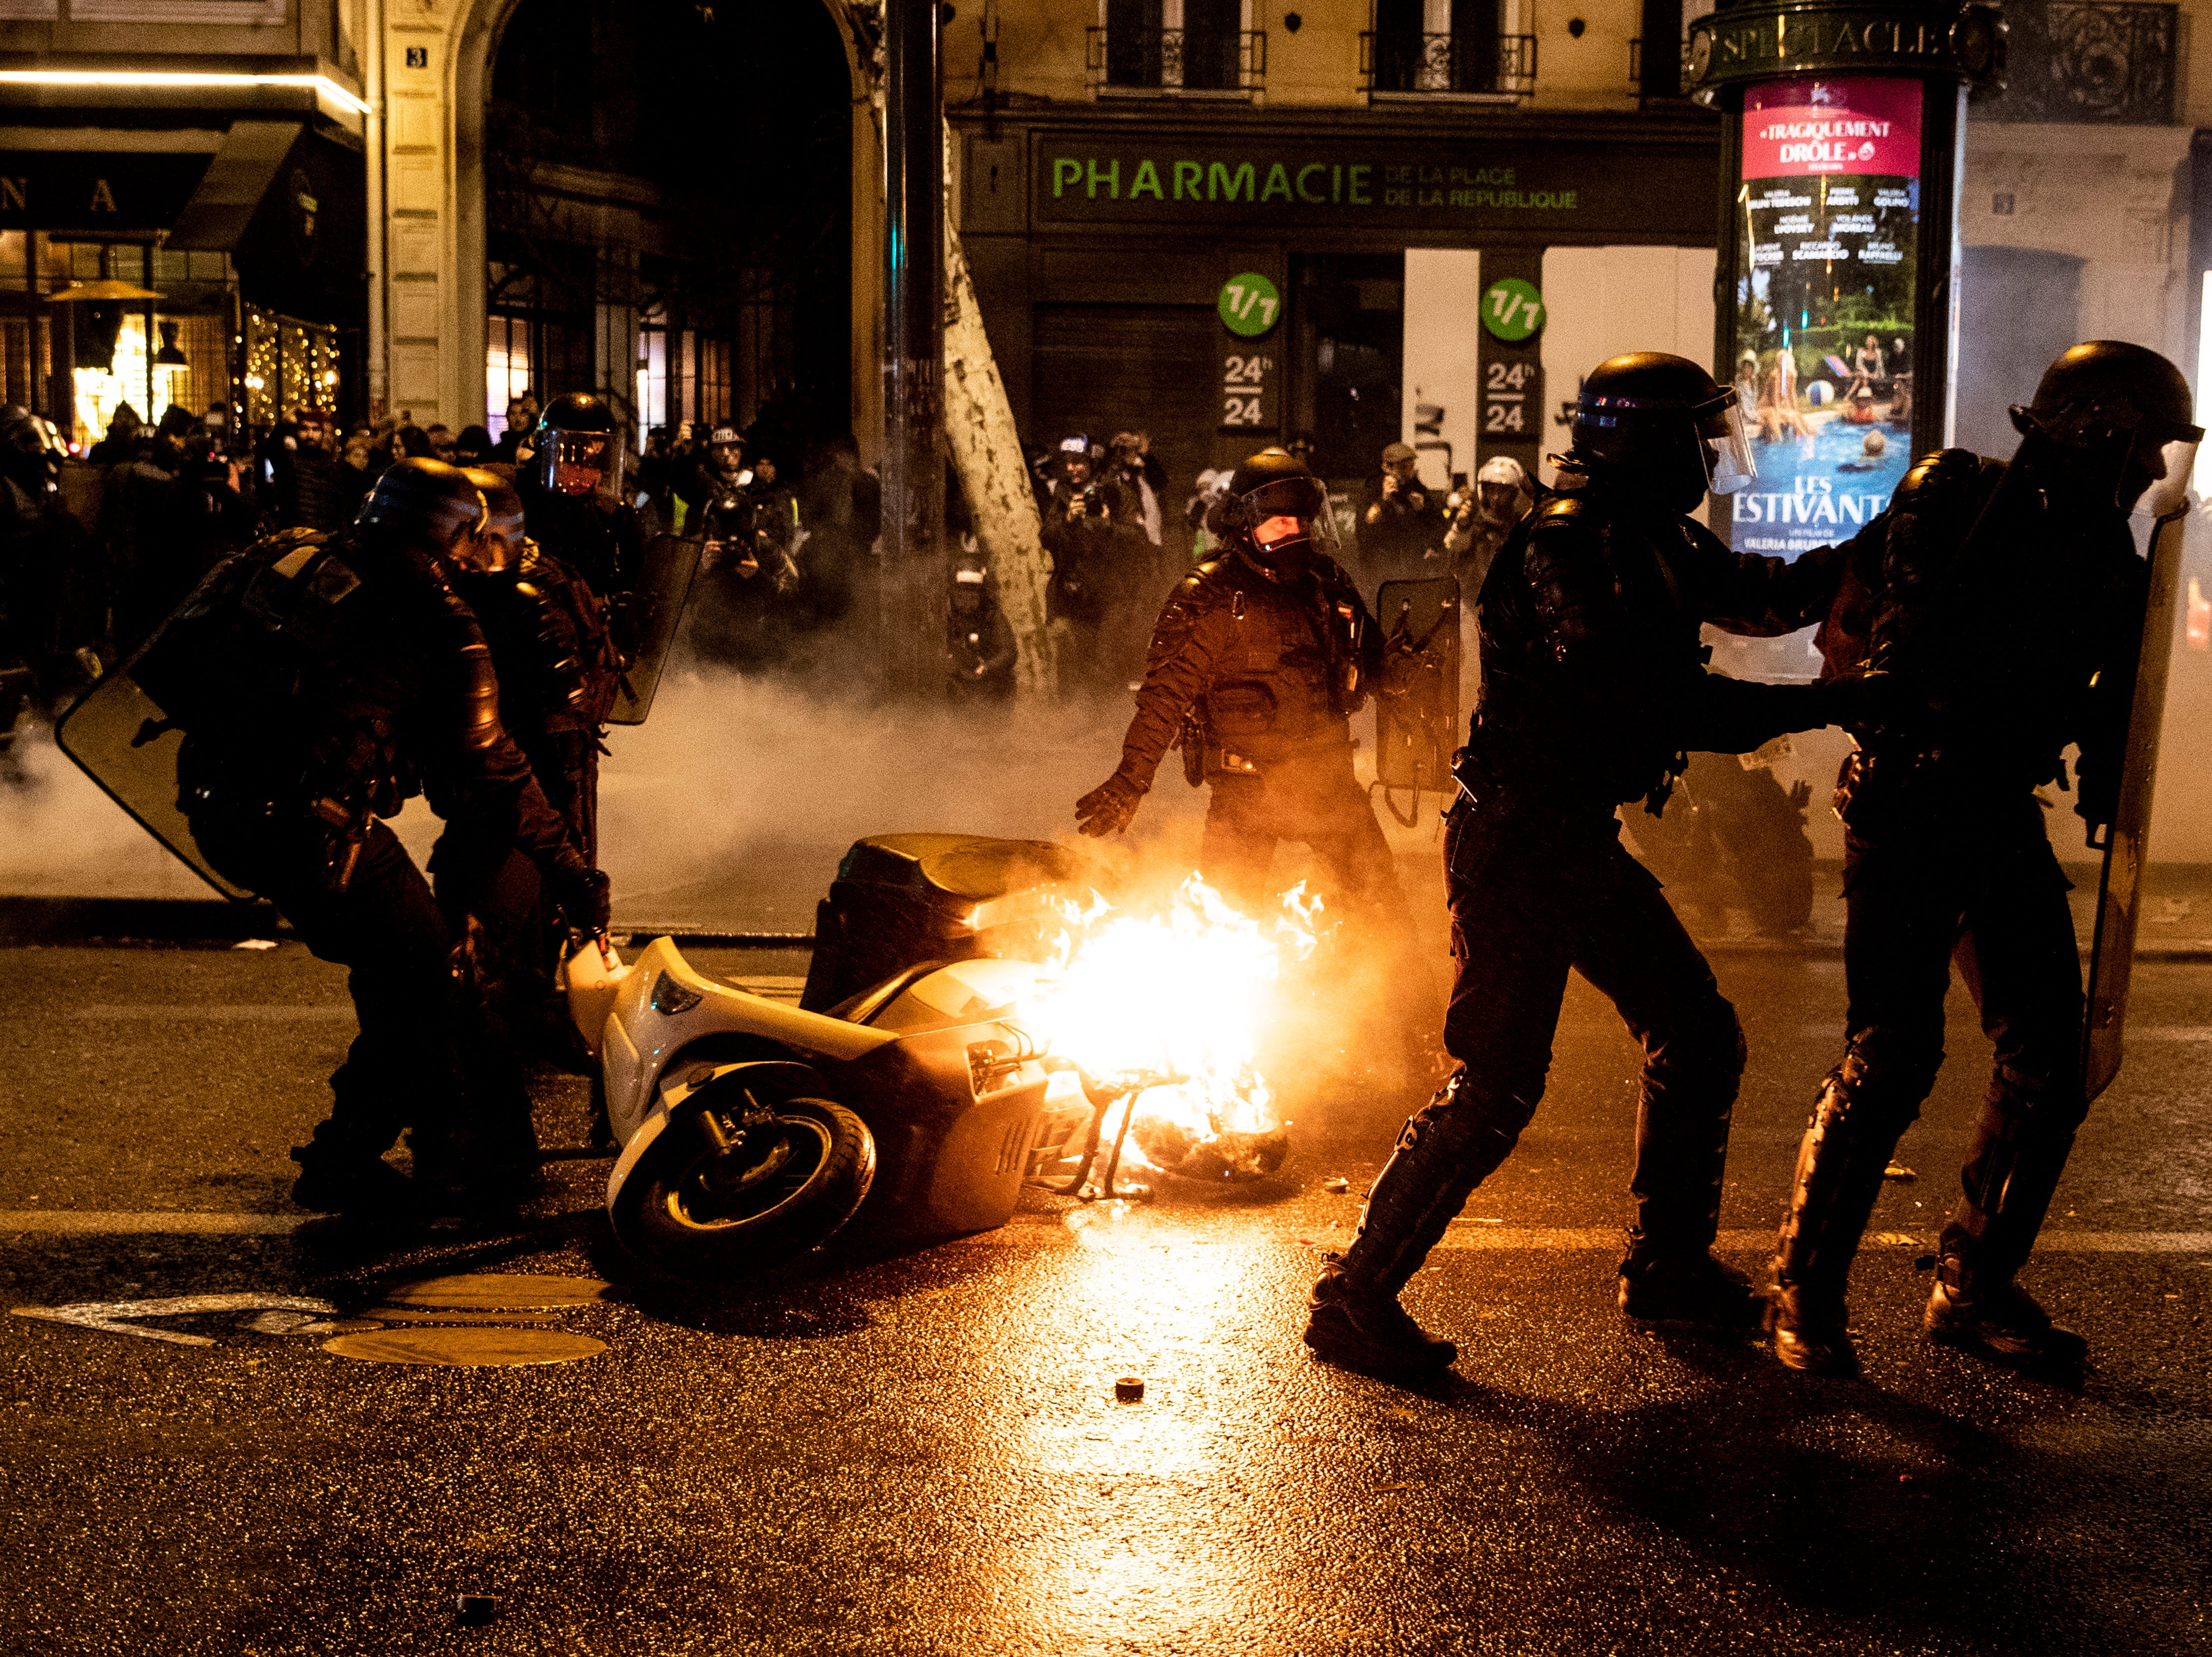 French riot police take away a burning scooter as clashes erupted with 'Gilets Jaunes' (Yellow Vests) protesters who wanted to stay all night on the square during the 'Act XI' demonstration (the 11th consecutive national protest on a Saturday) in Paris, France on Jan. 26, 2019. The so-called 'gilets jaunes' is a grassroots protest movement with supporters from a wide span of the political spectrum, that originally started with protest across the nation in late 2018 against high fuel prices. The movement in the meantime also protests the French government's tax reforms, the increasing costs of living and some even call for the resignation of French President Emmanuel Macron.